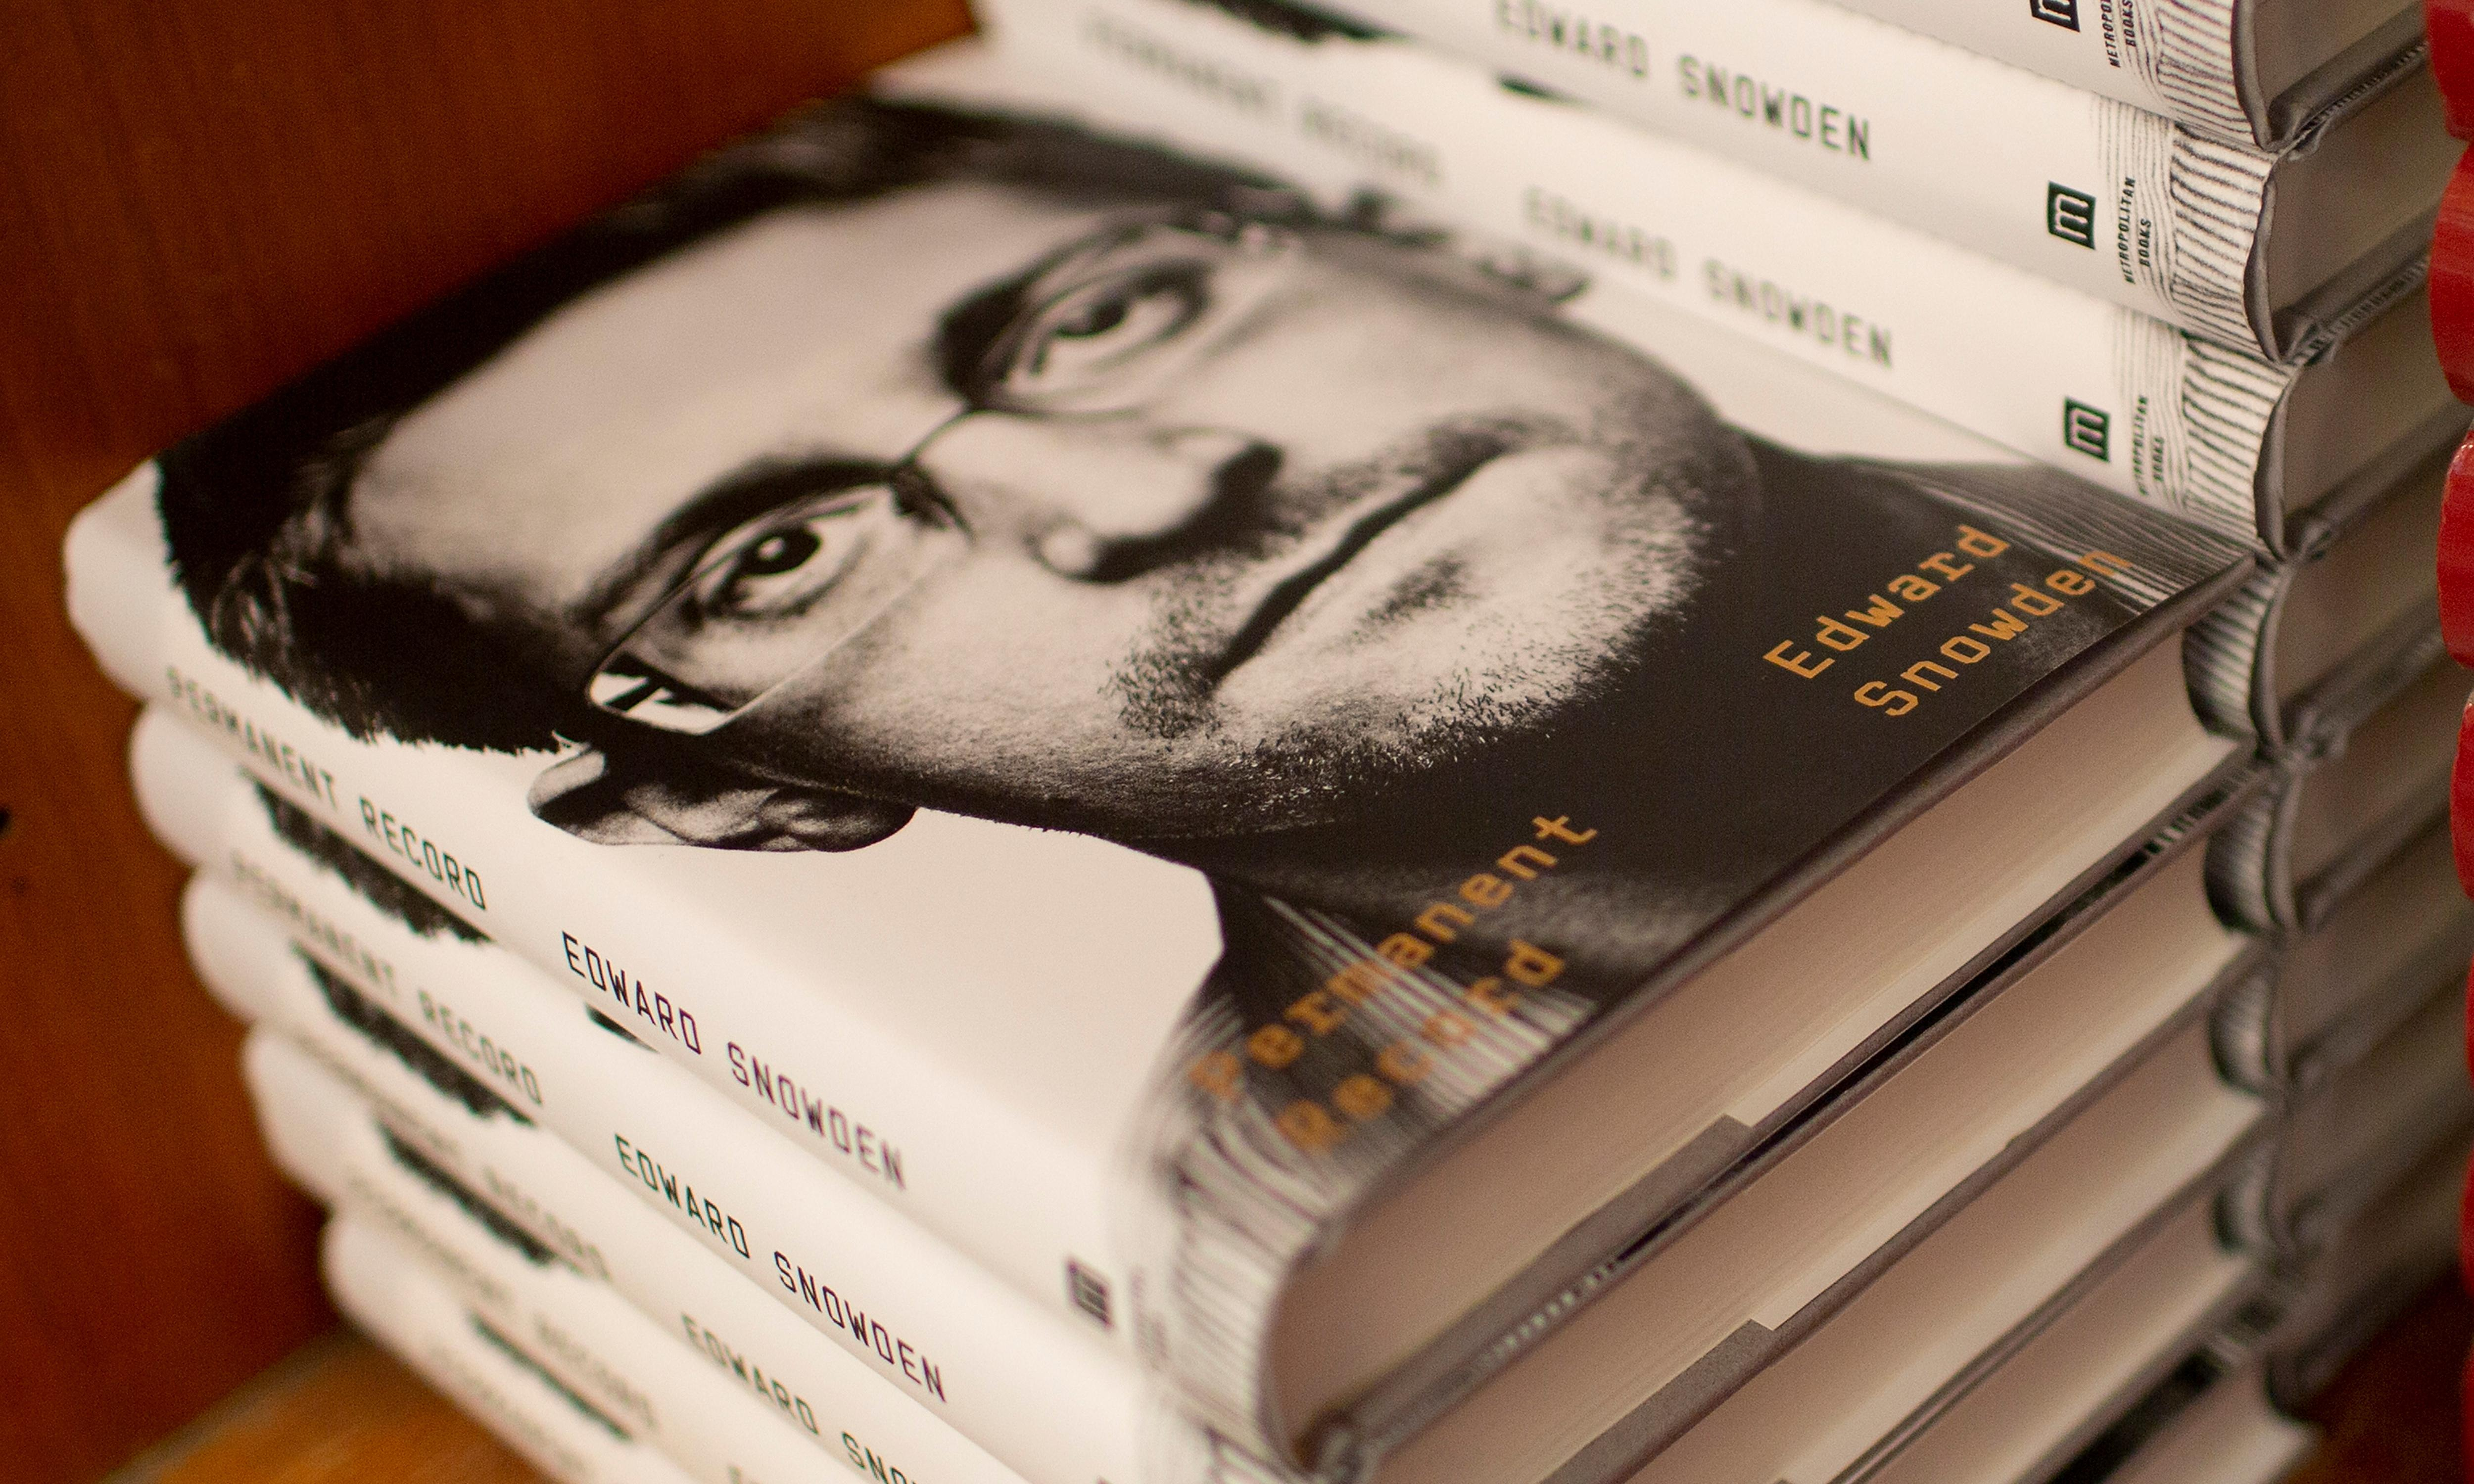 Edward Snowden says autobiography has been censored in China